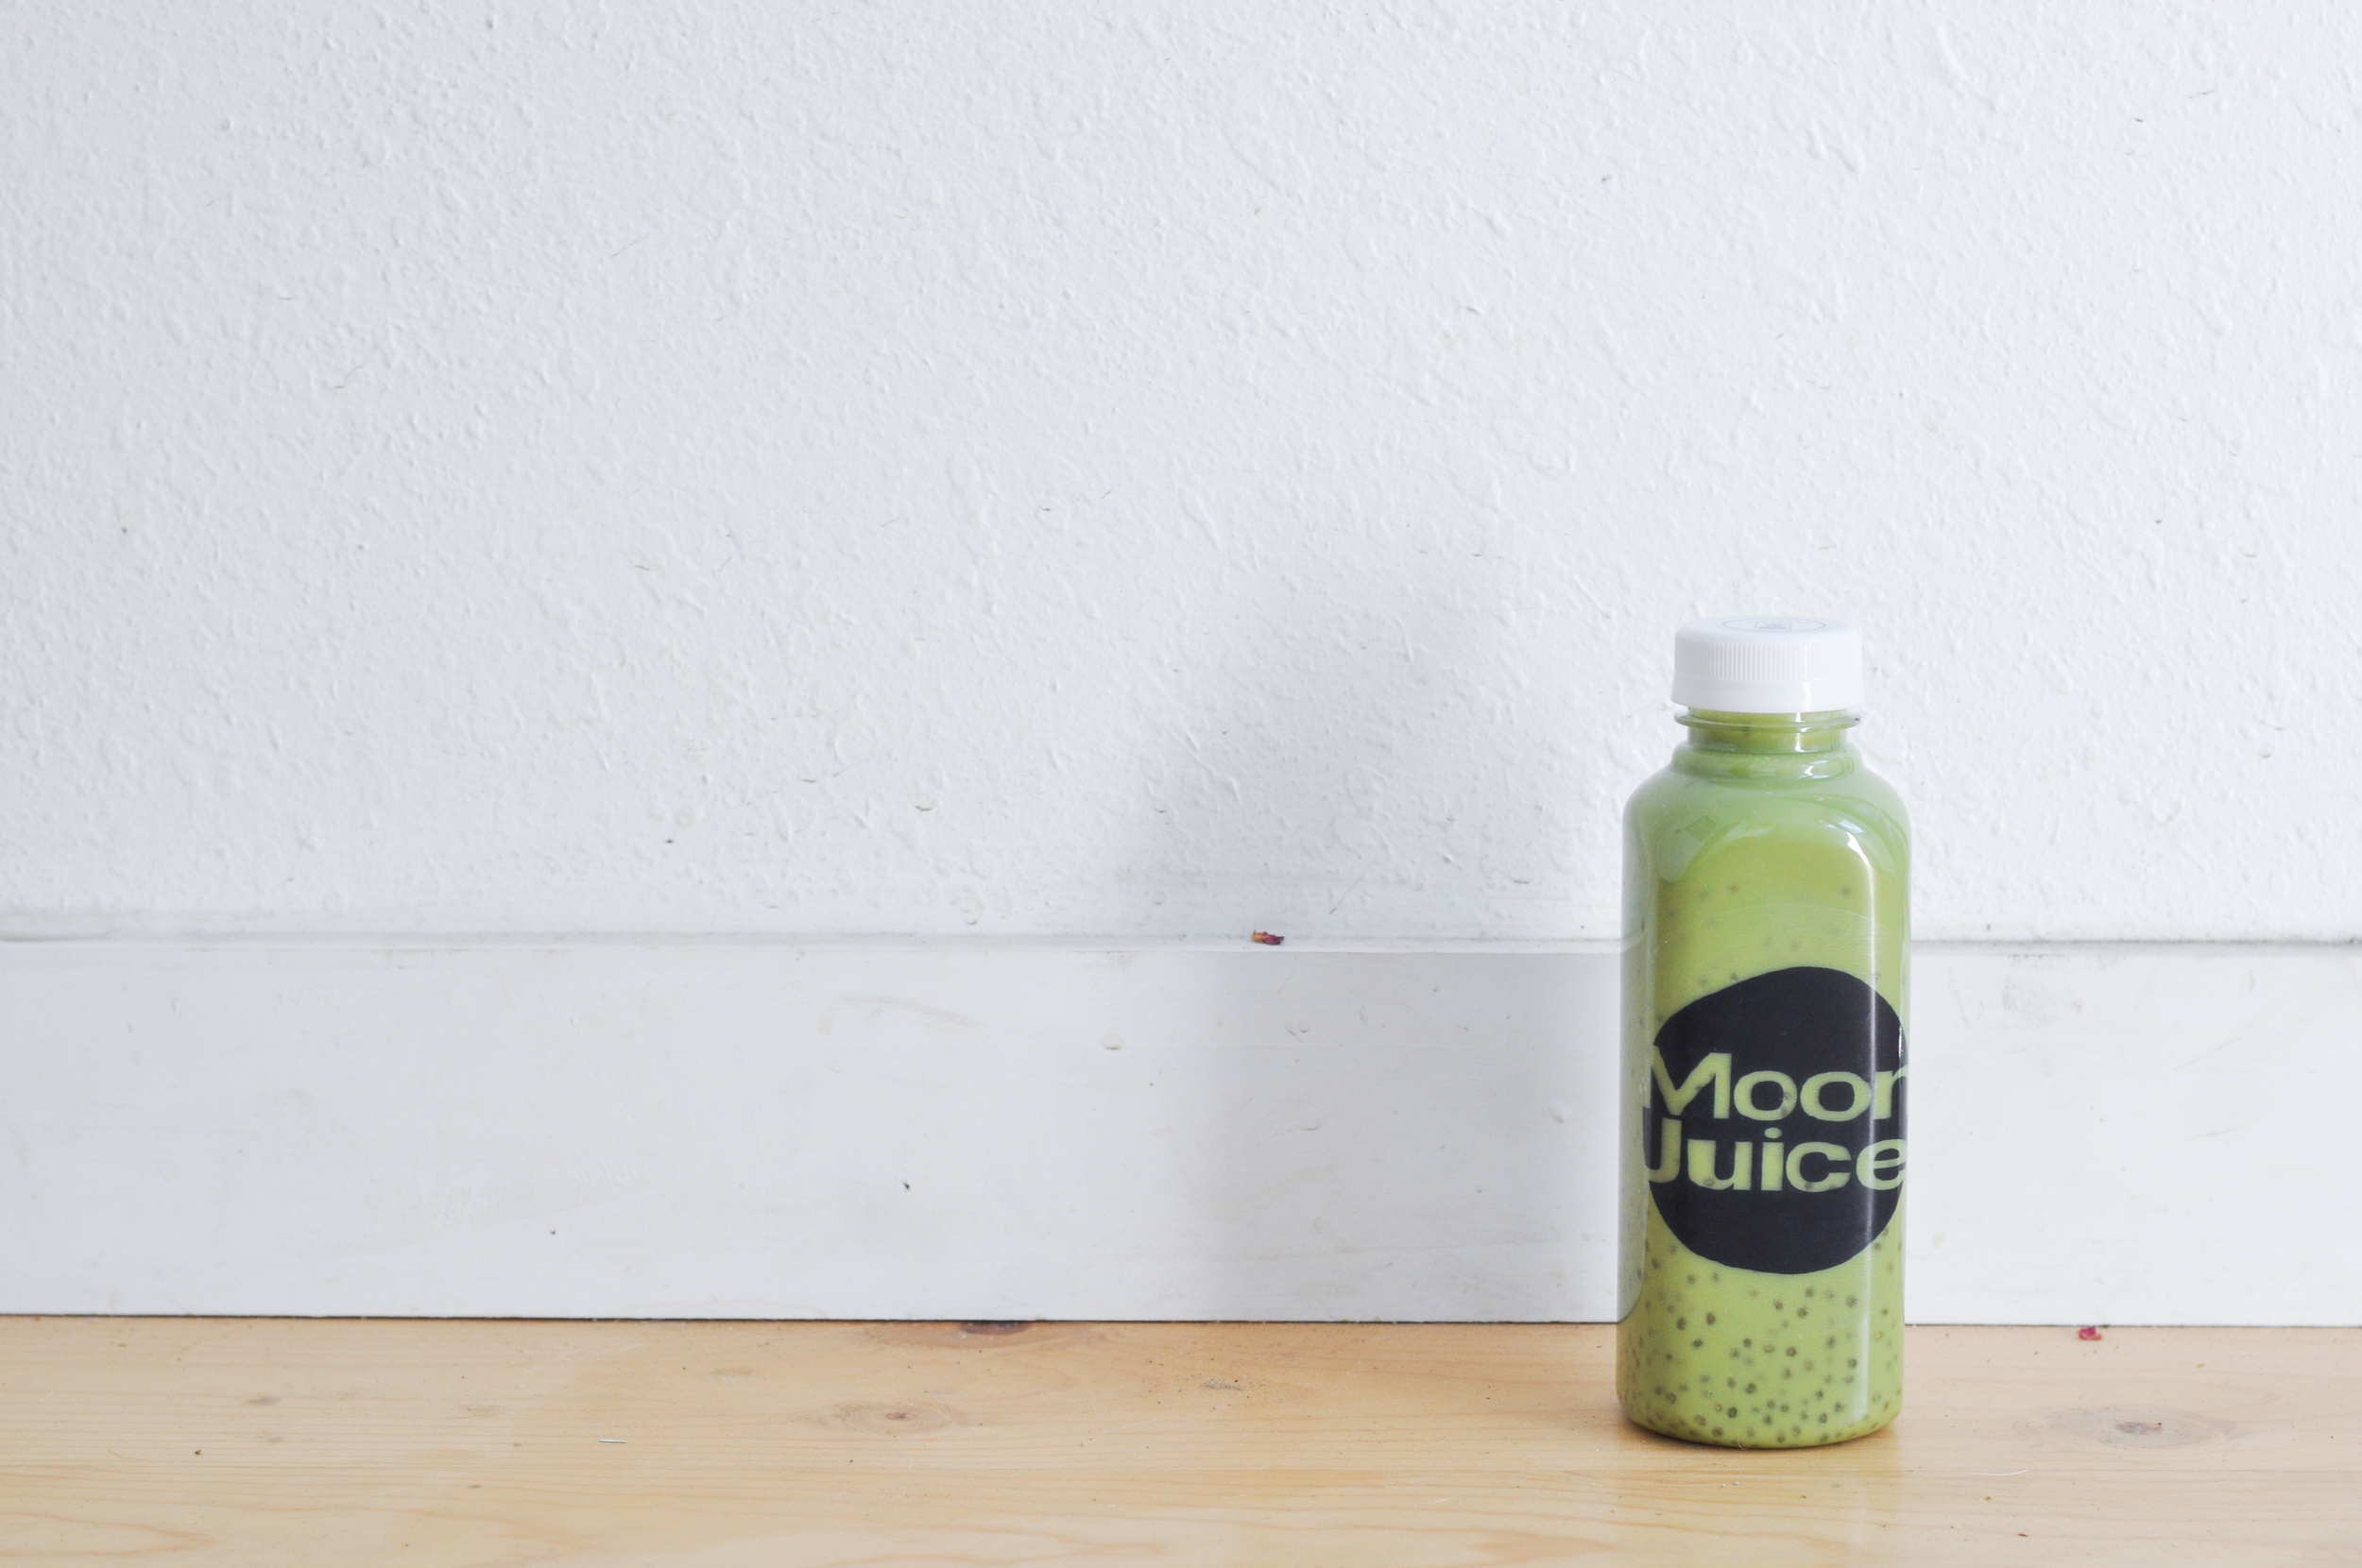 free-and-native-moon-juice